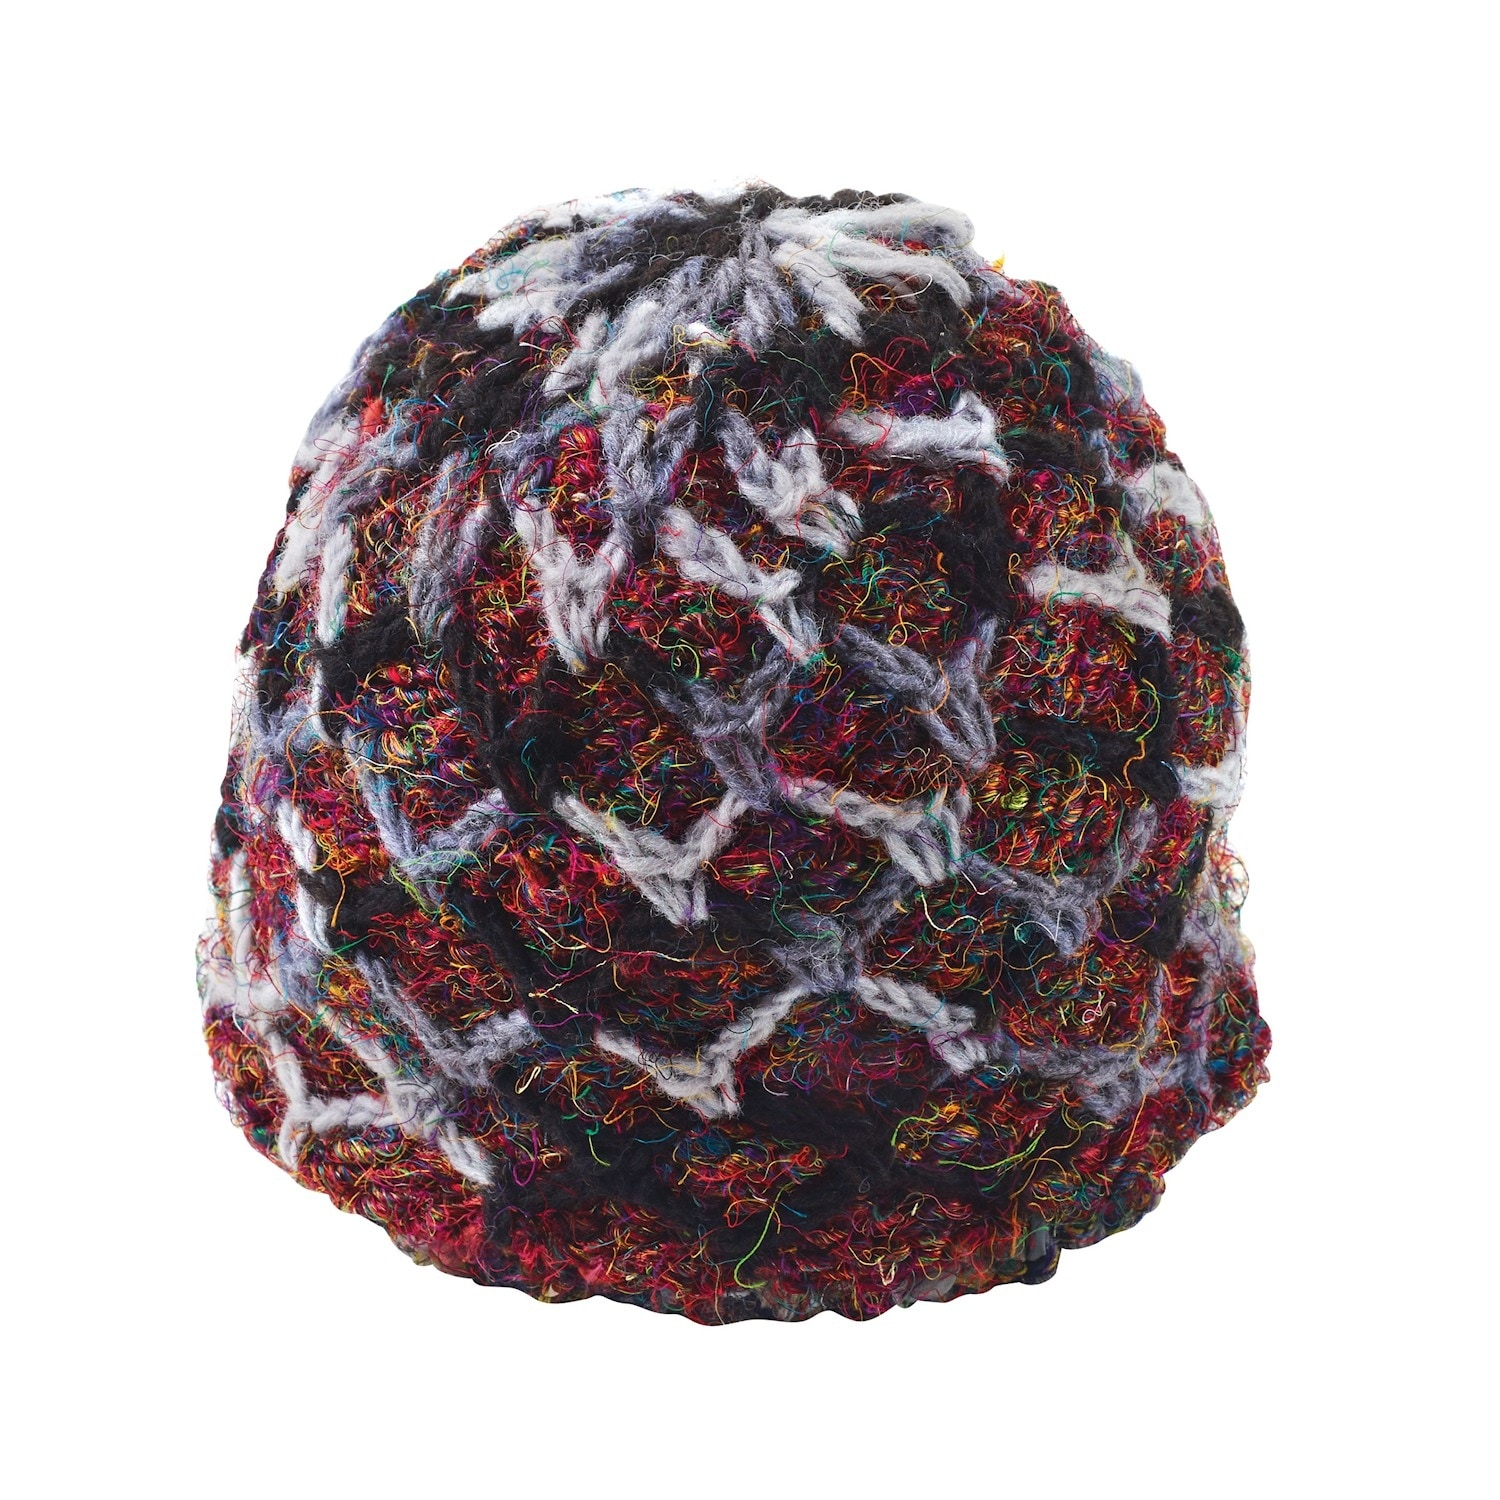 765b8d5ed0f Shop Women s Beanie Hat - Recycled Silk Ruby-Red Accessories - Free  Shipping On Orders Over  45 - Overstock - 18767995